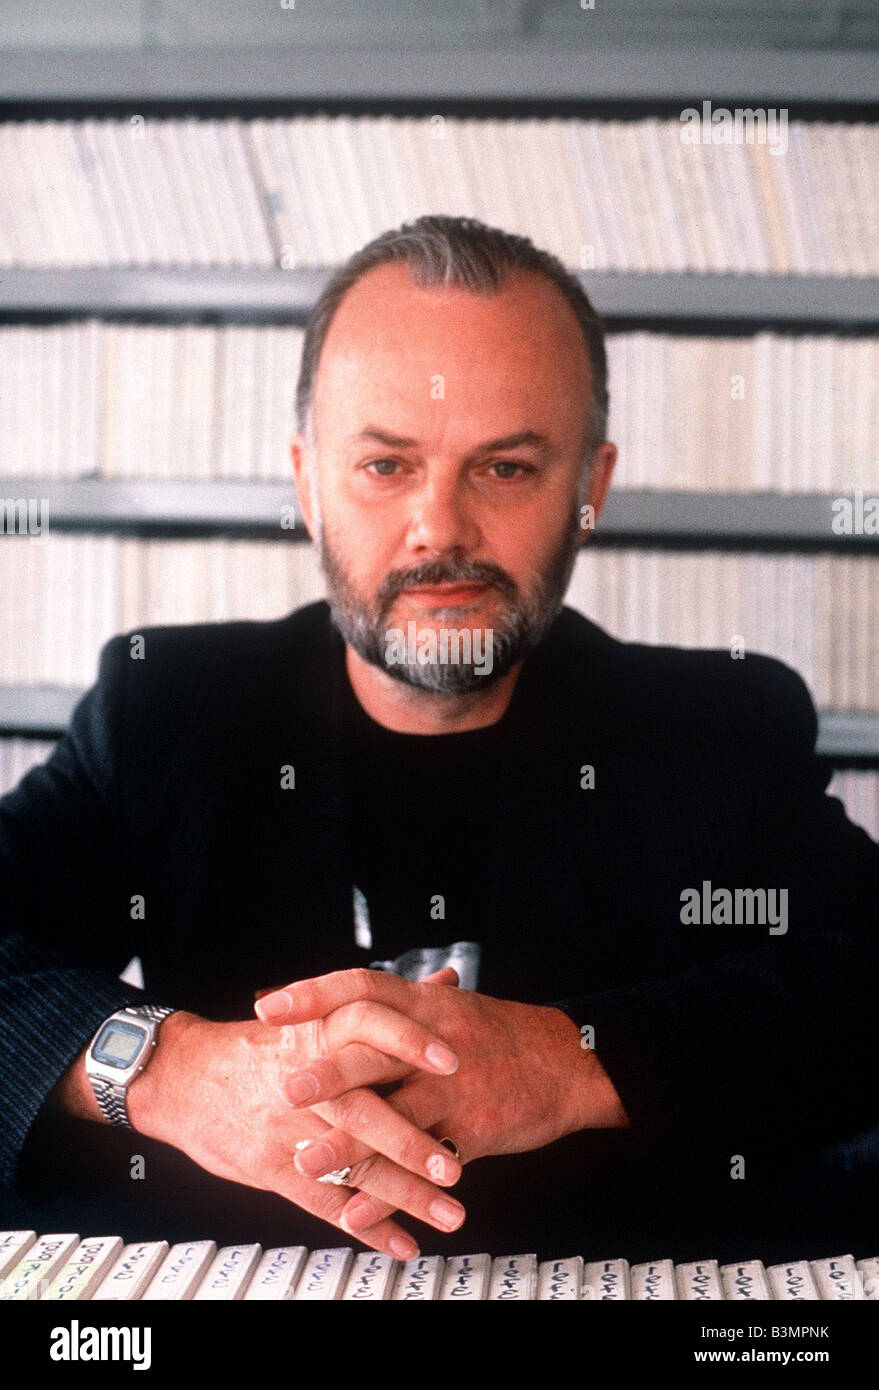 BBC Radio 1 s longest serving DJ and presenter John Peel - Stock Image